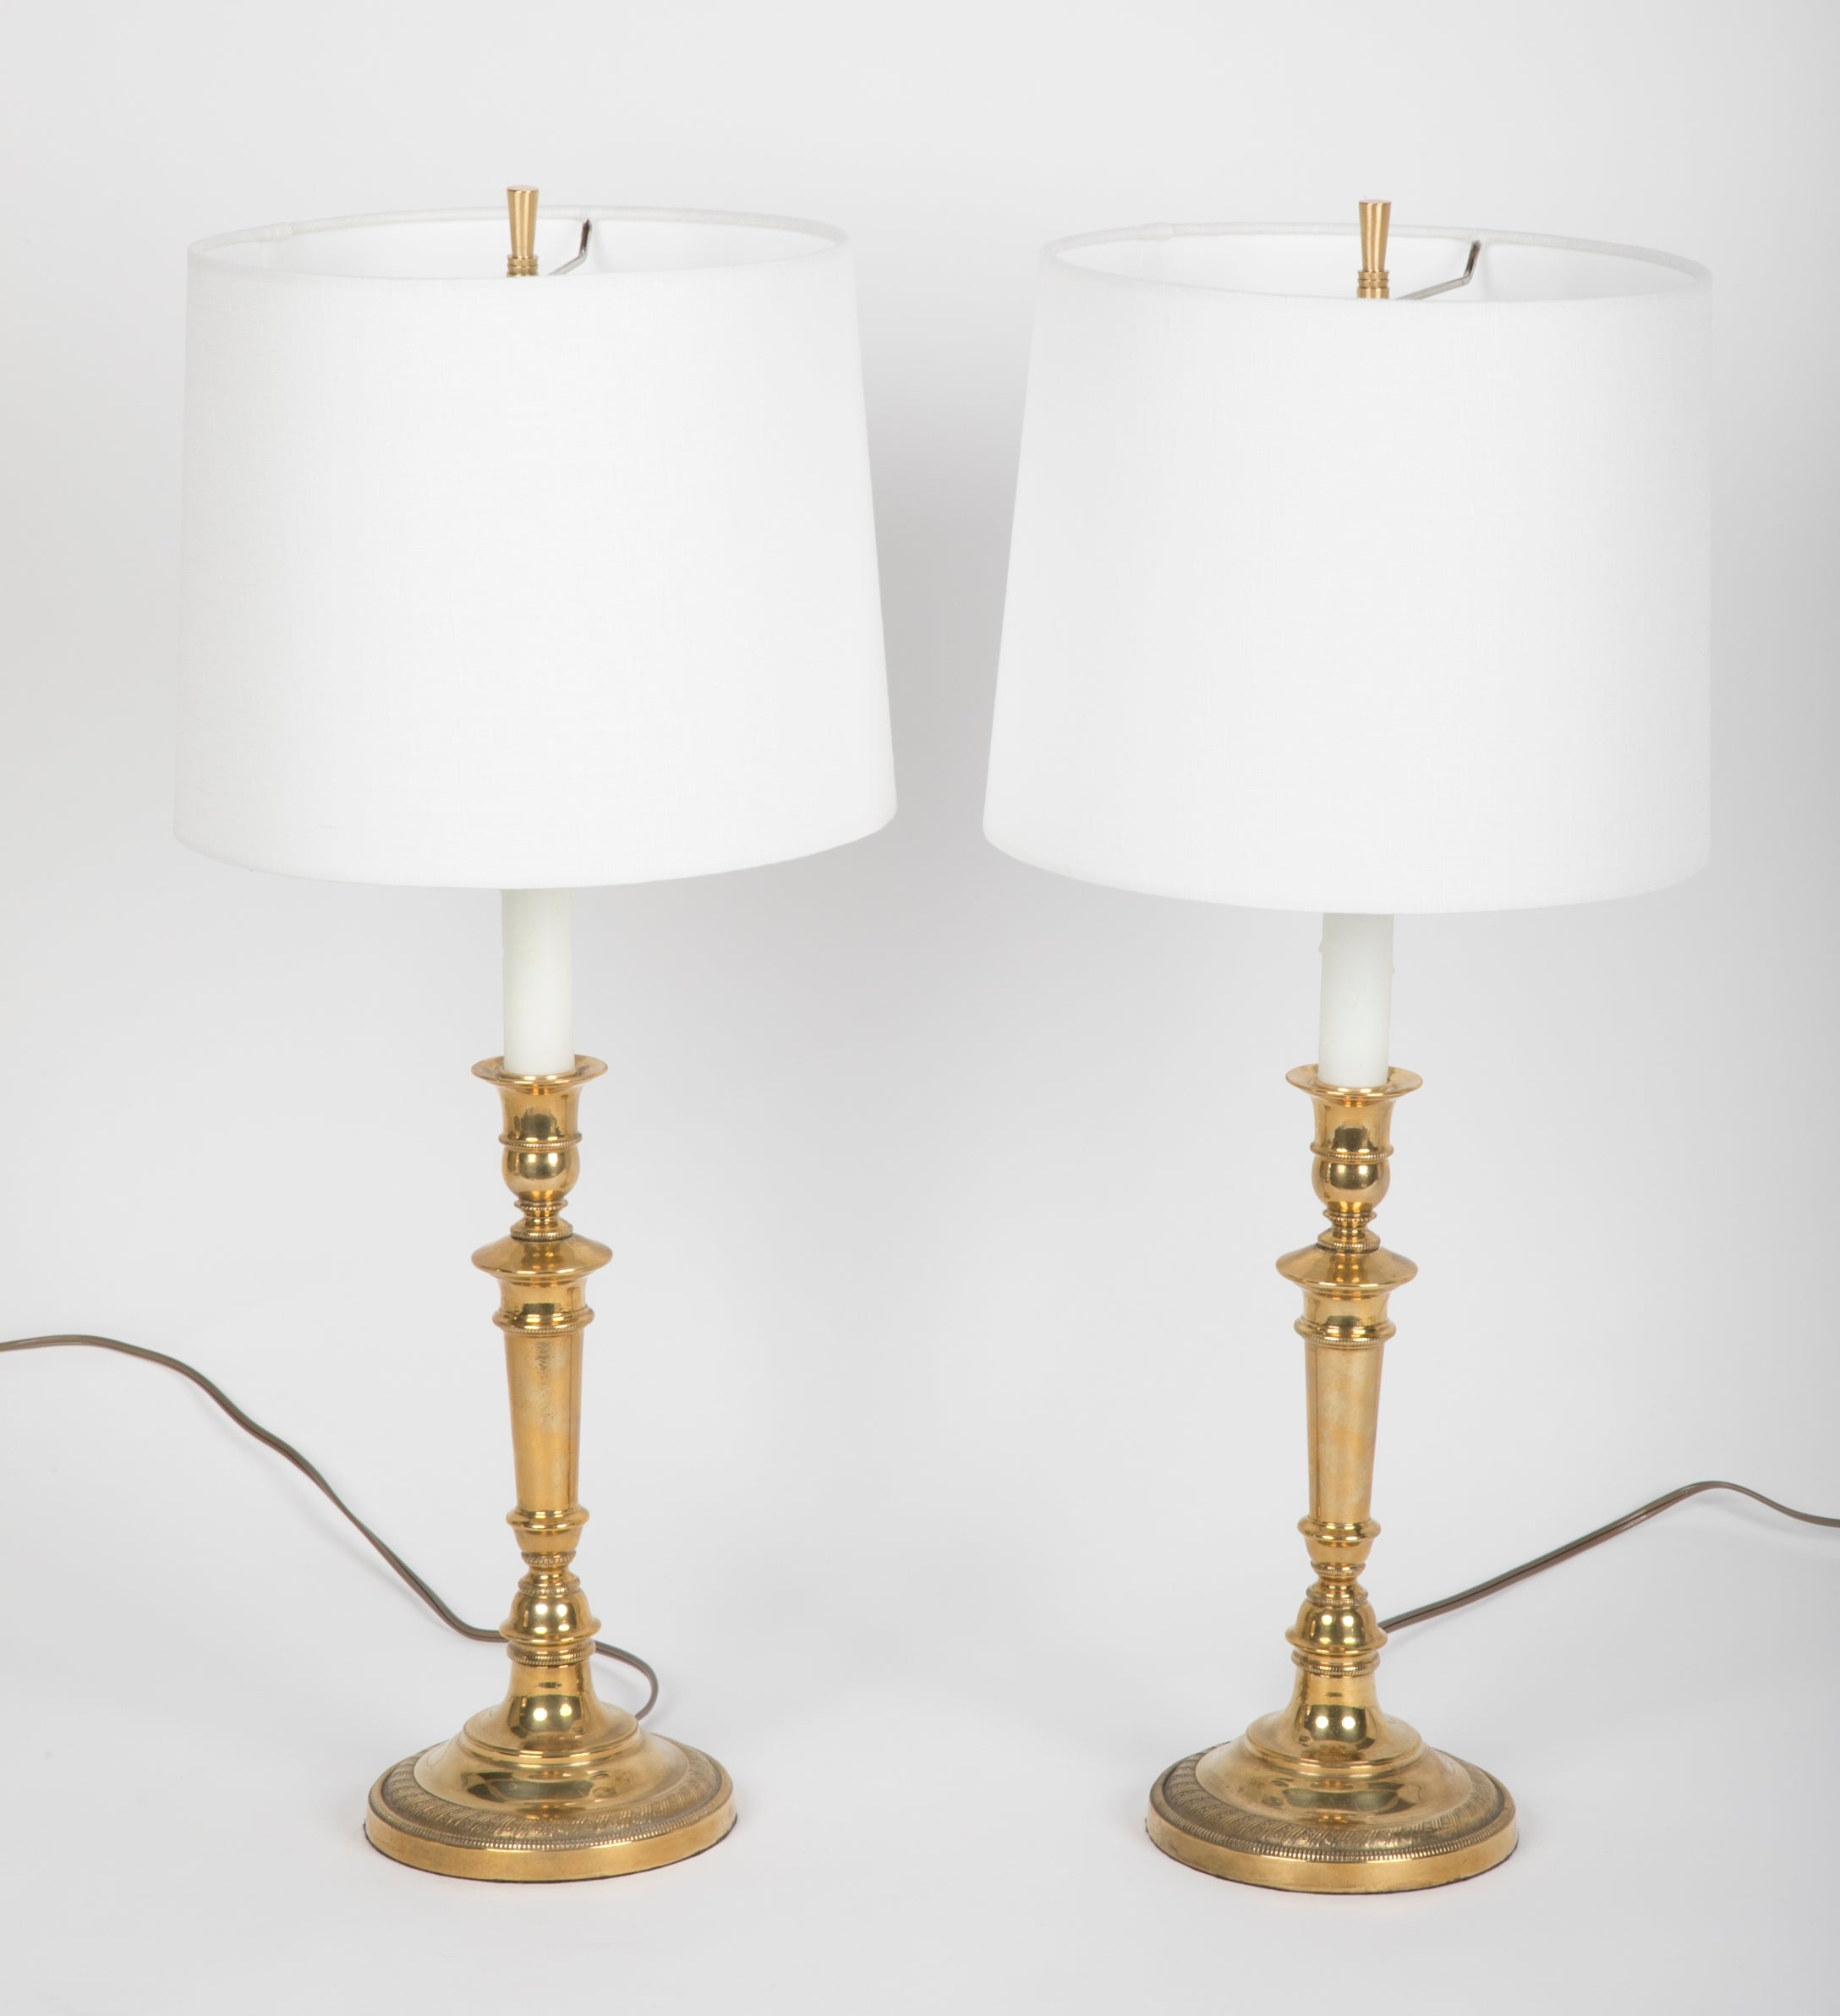 Marvelous Pair Of Empire Style Brass Candlestick Lamps